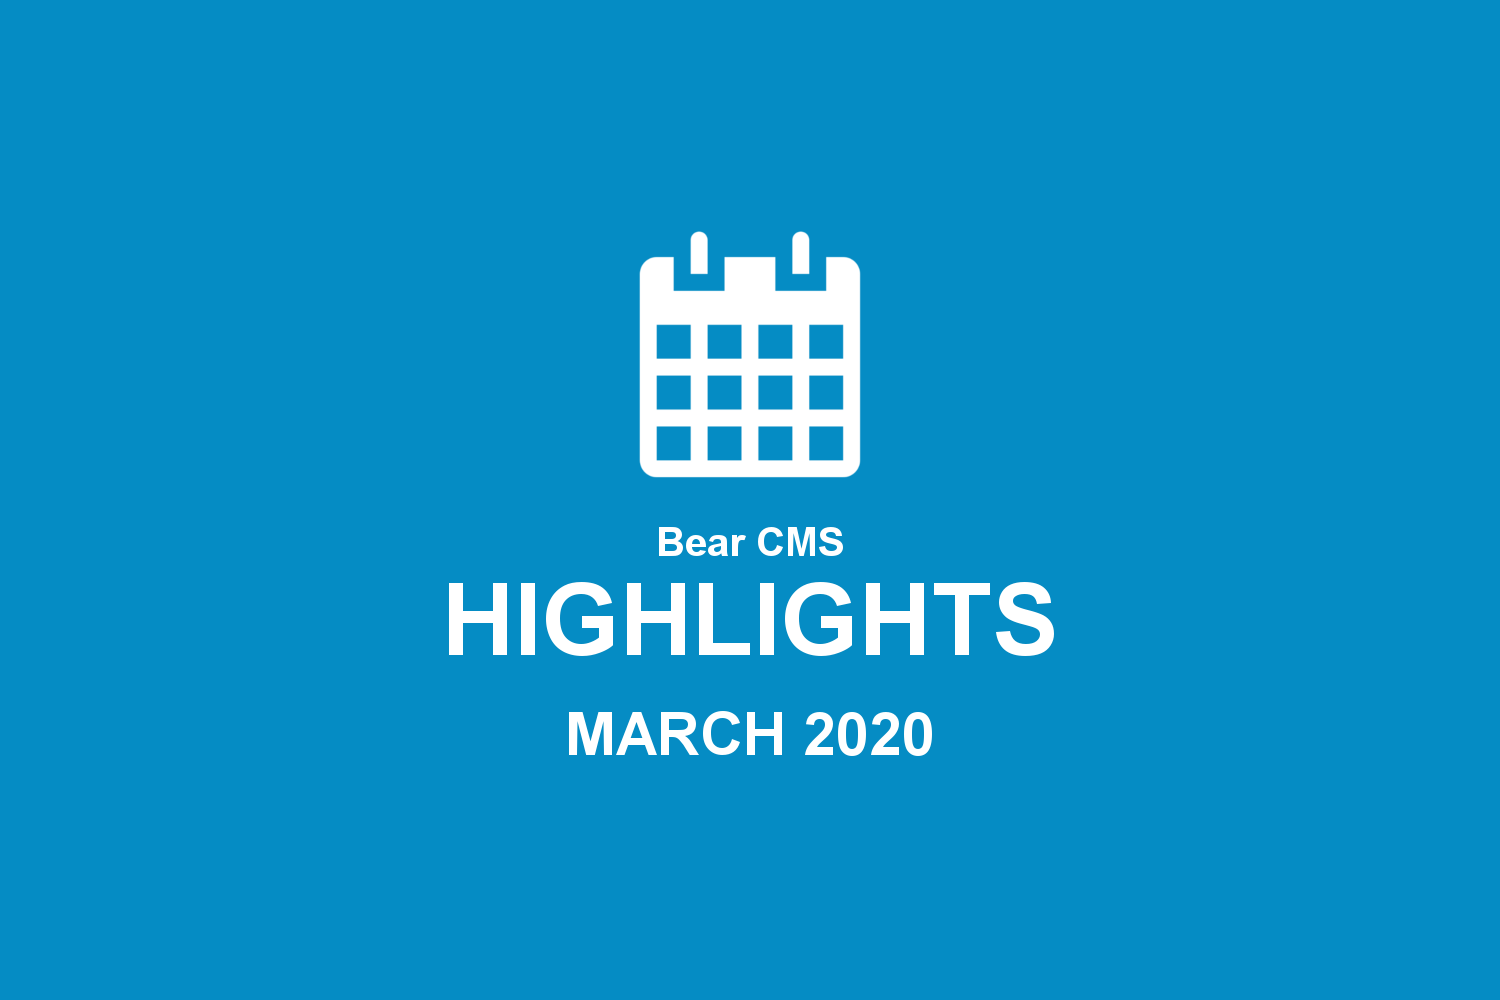 Bear CMS highlights (March 2020)